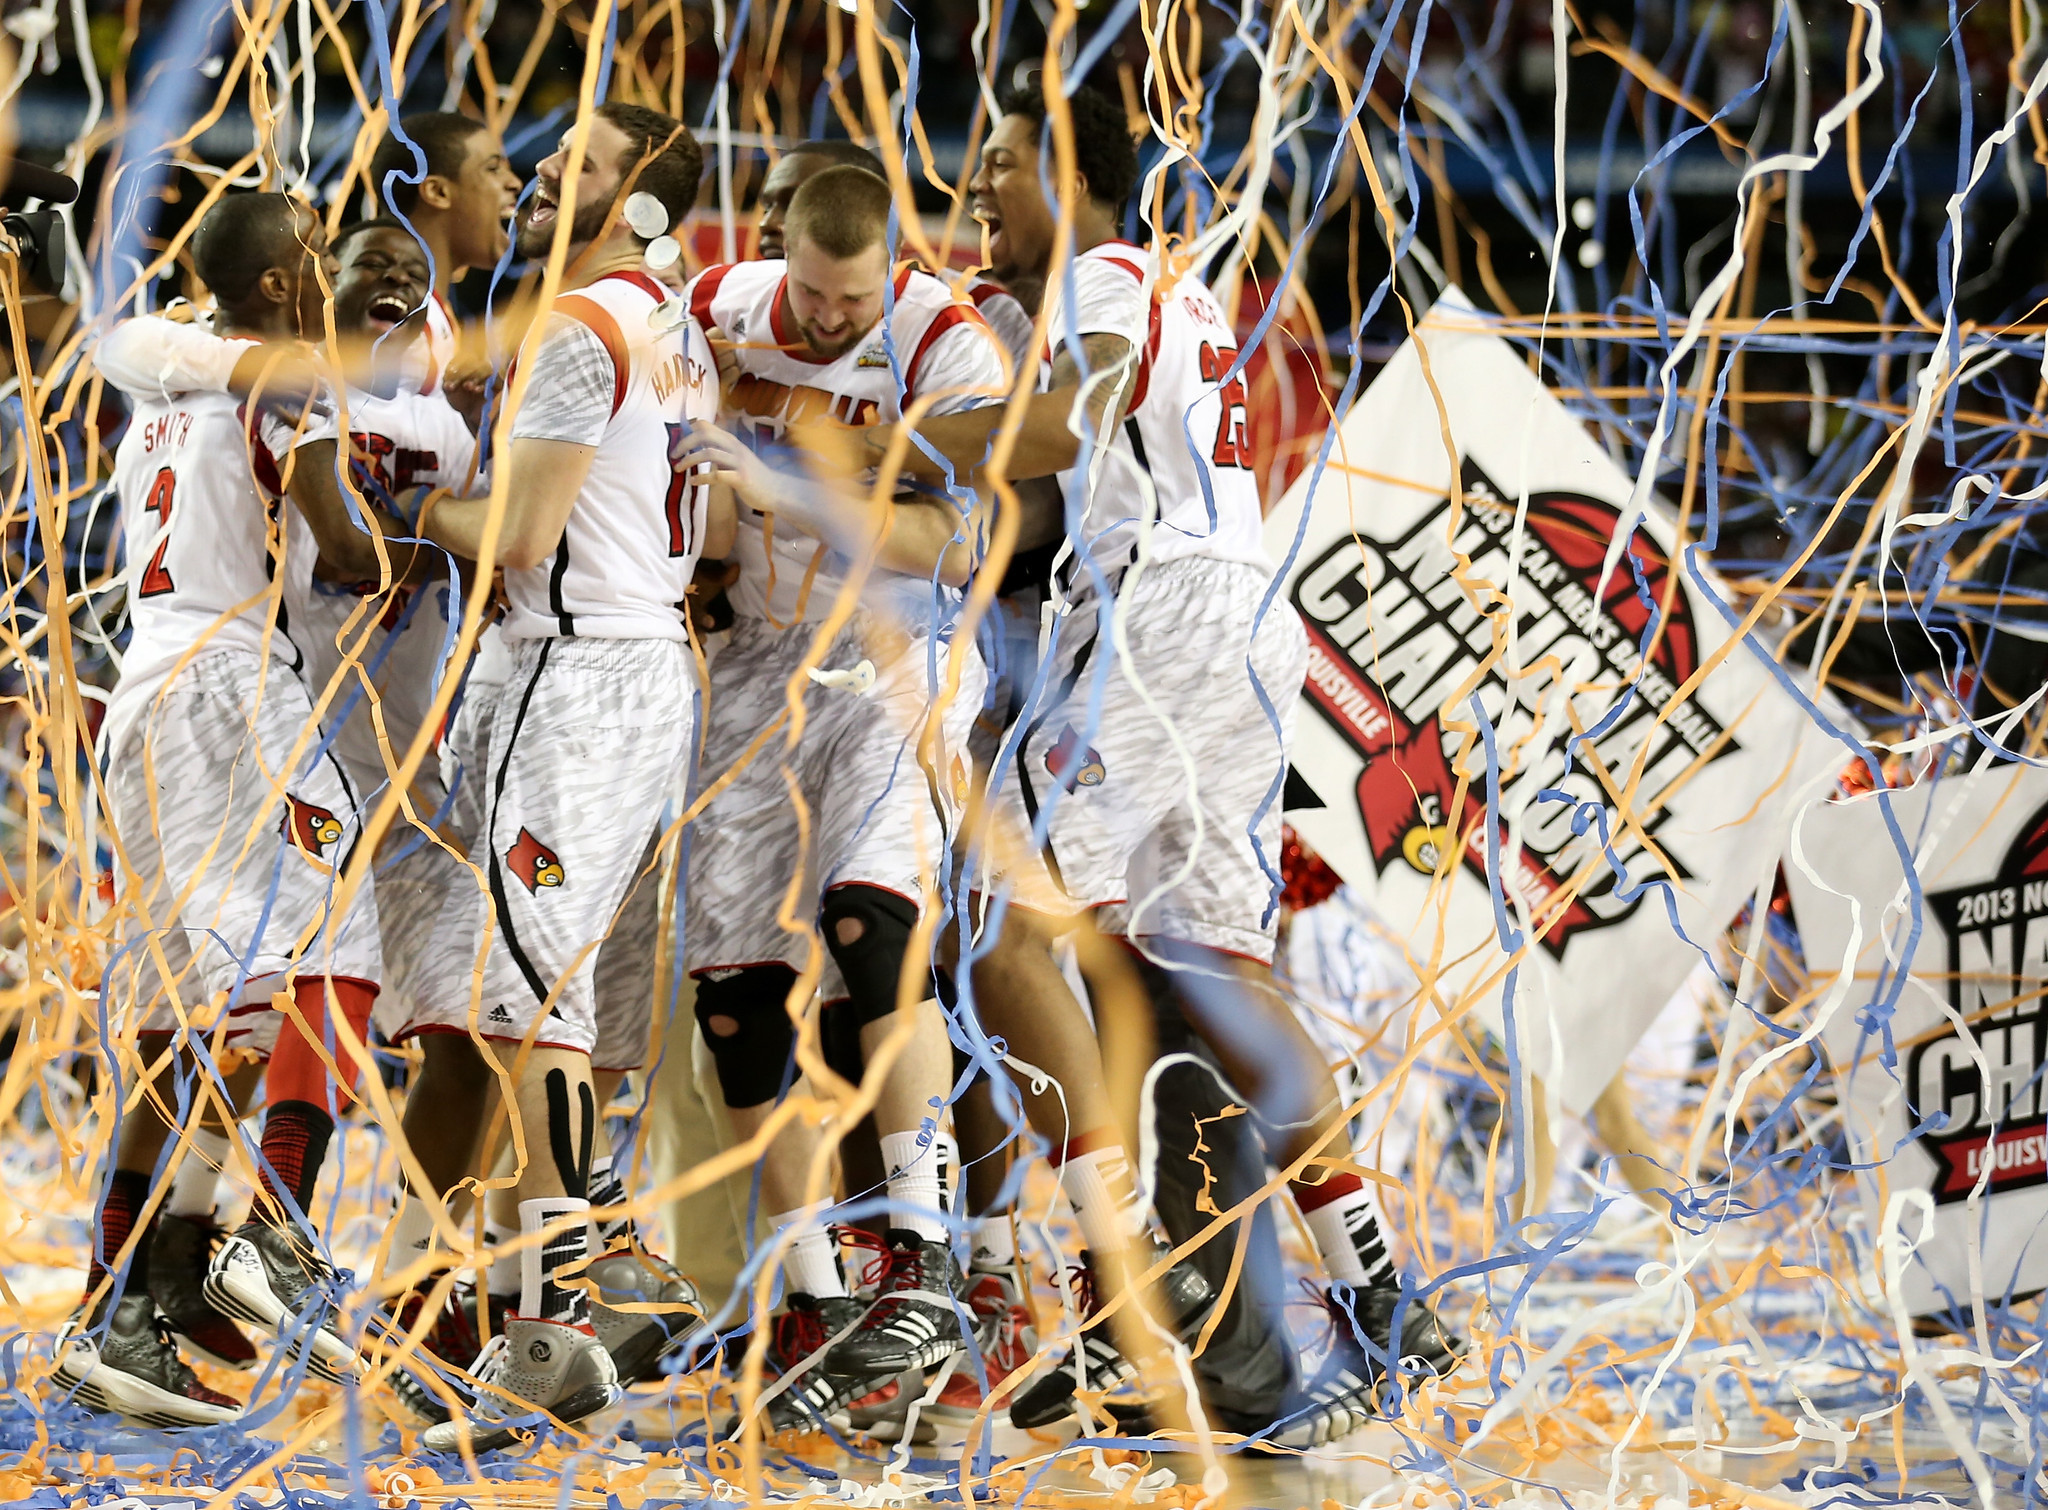 Photos: March Madness 2013 - Louisville Cardinals win NCAA title